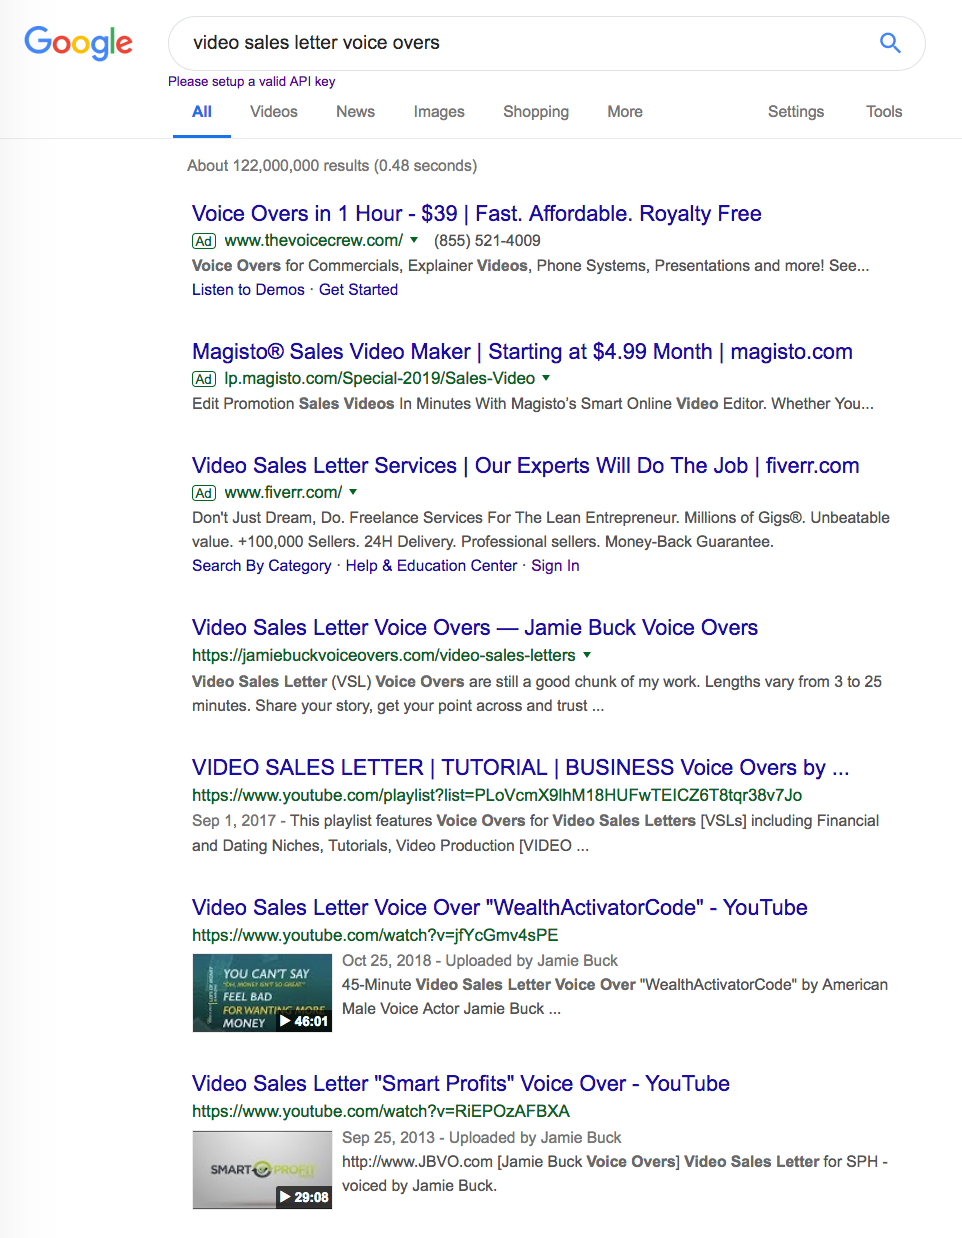 video-sales-letter-voice-overs-Jamie-Buck-Voice-Overs-1.png